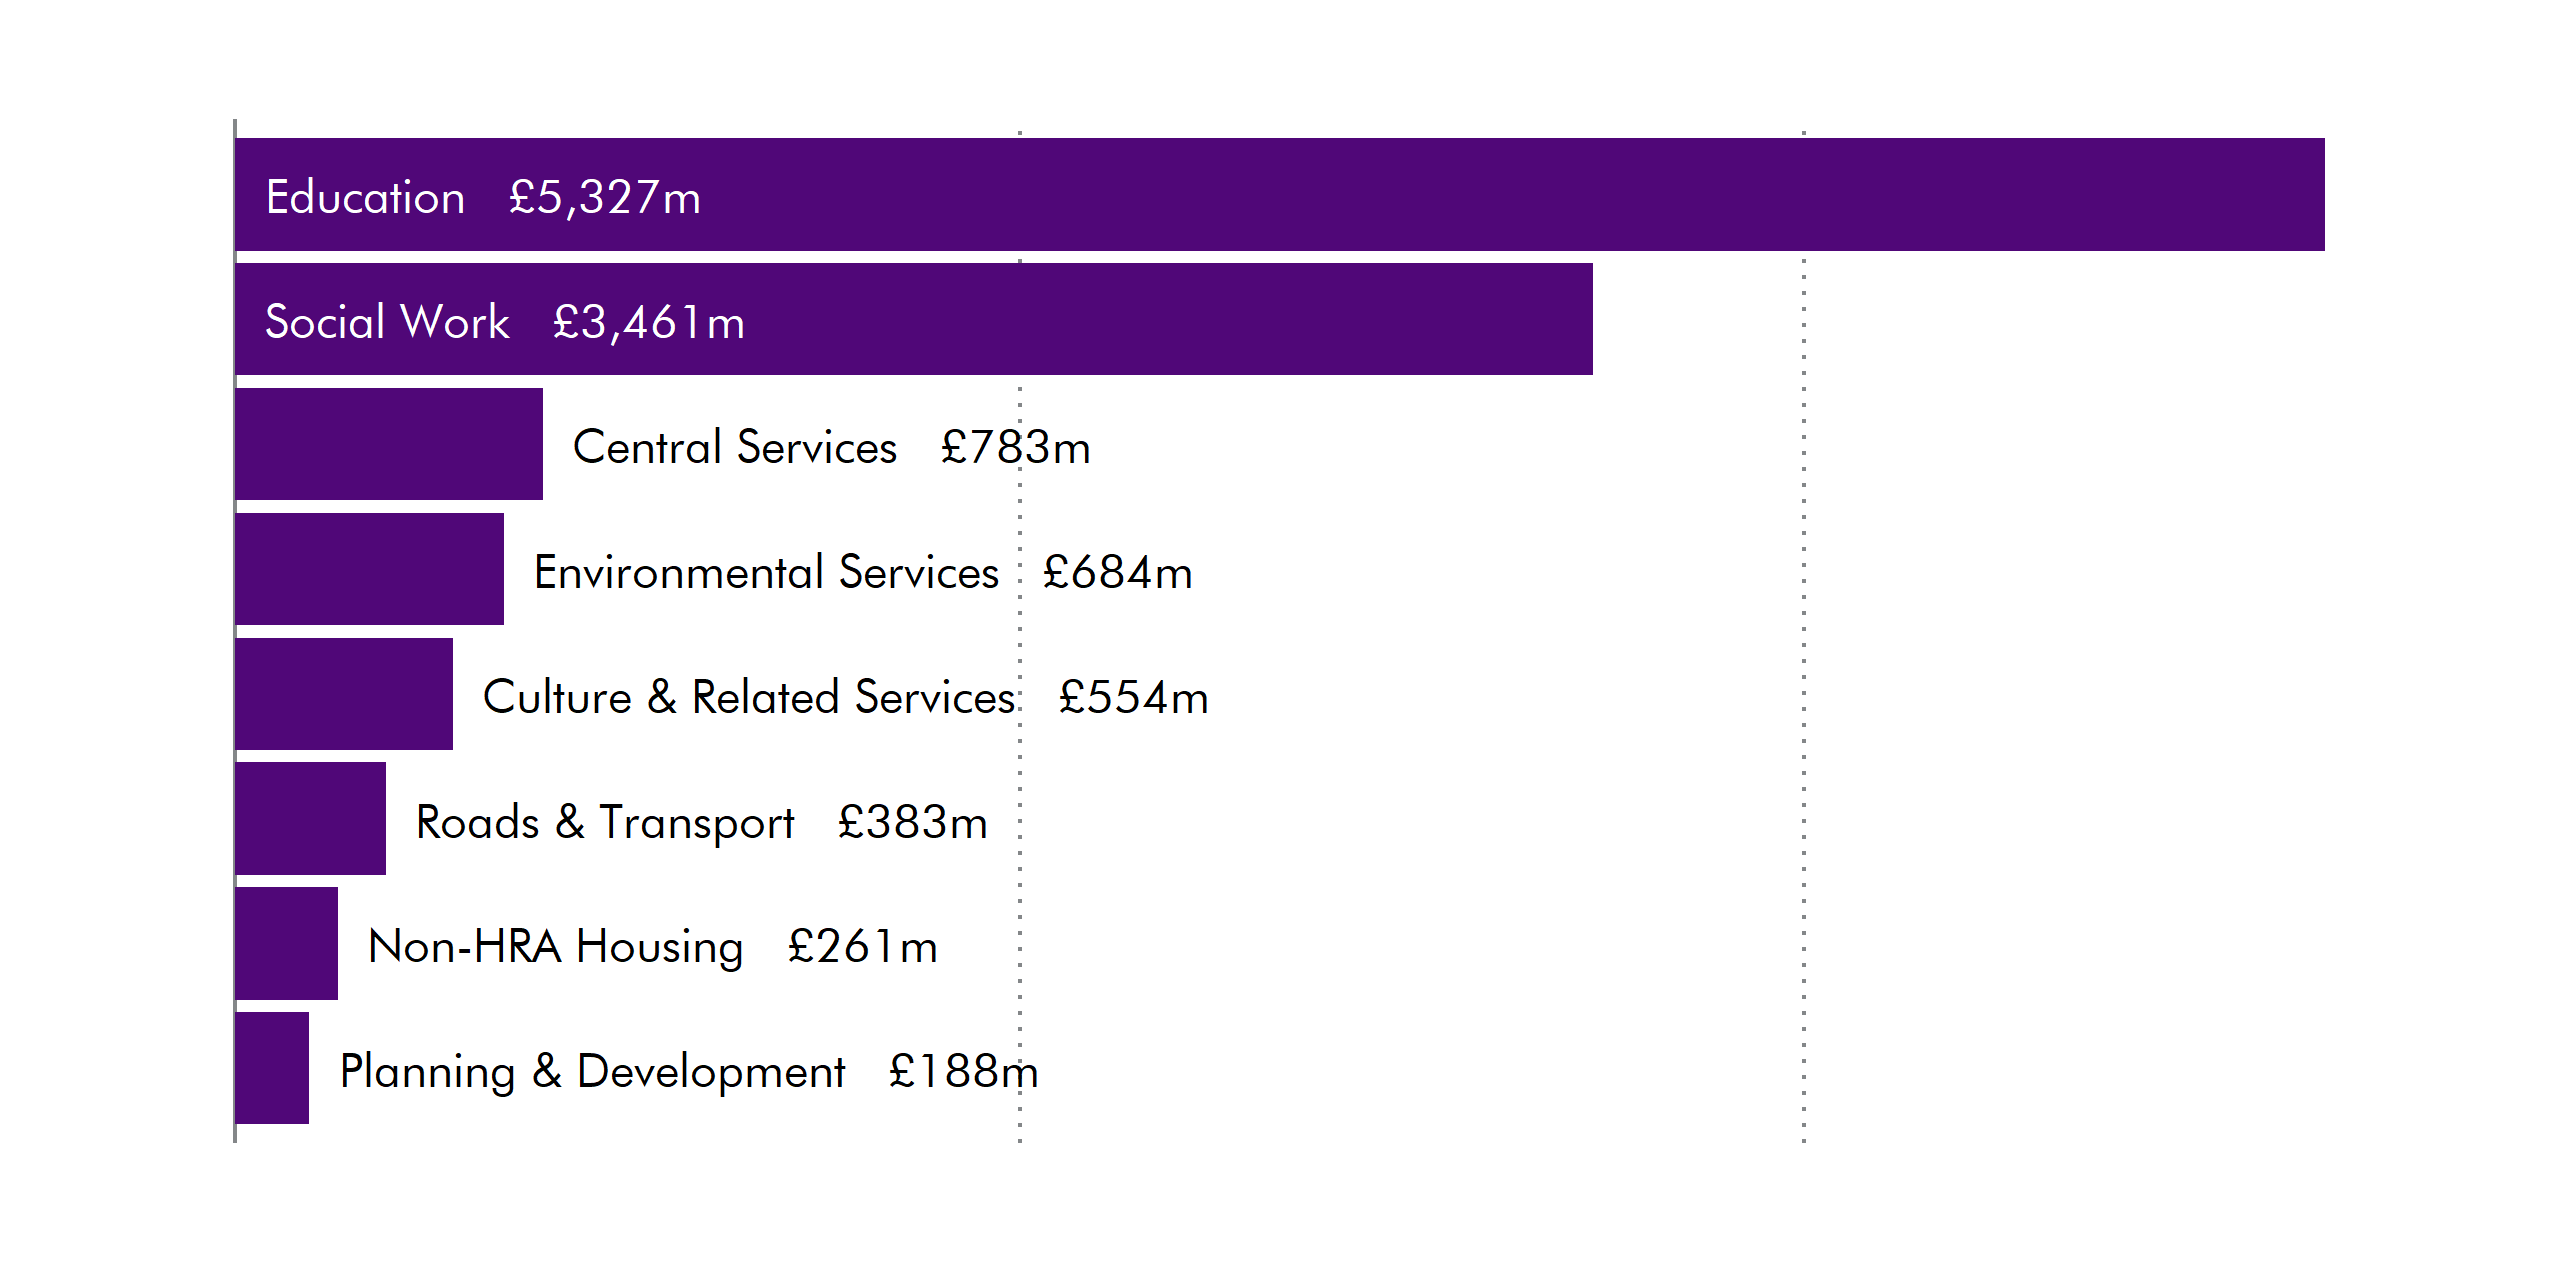 Showing spending on main policy areas. Education received 5.3 billion. Social work received 3.5 billion. These are much higher than for any other areas.